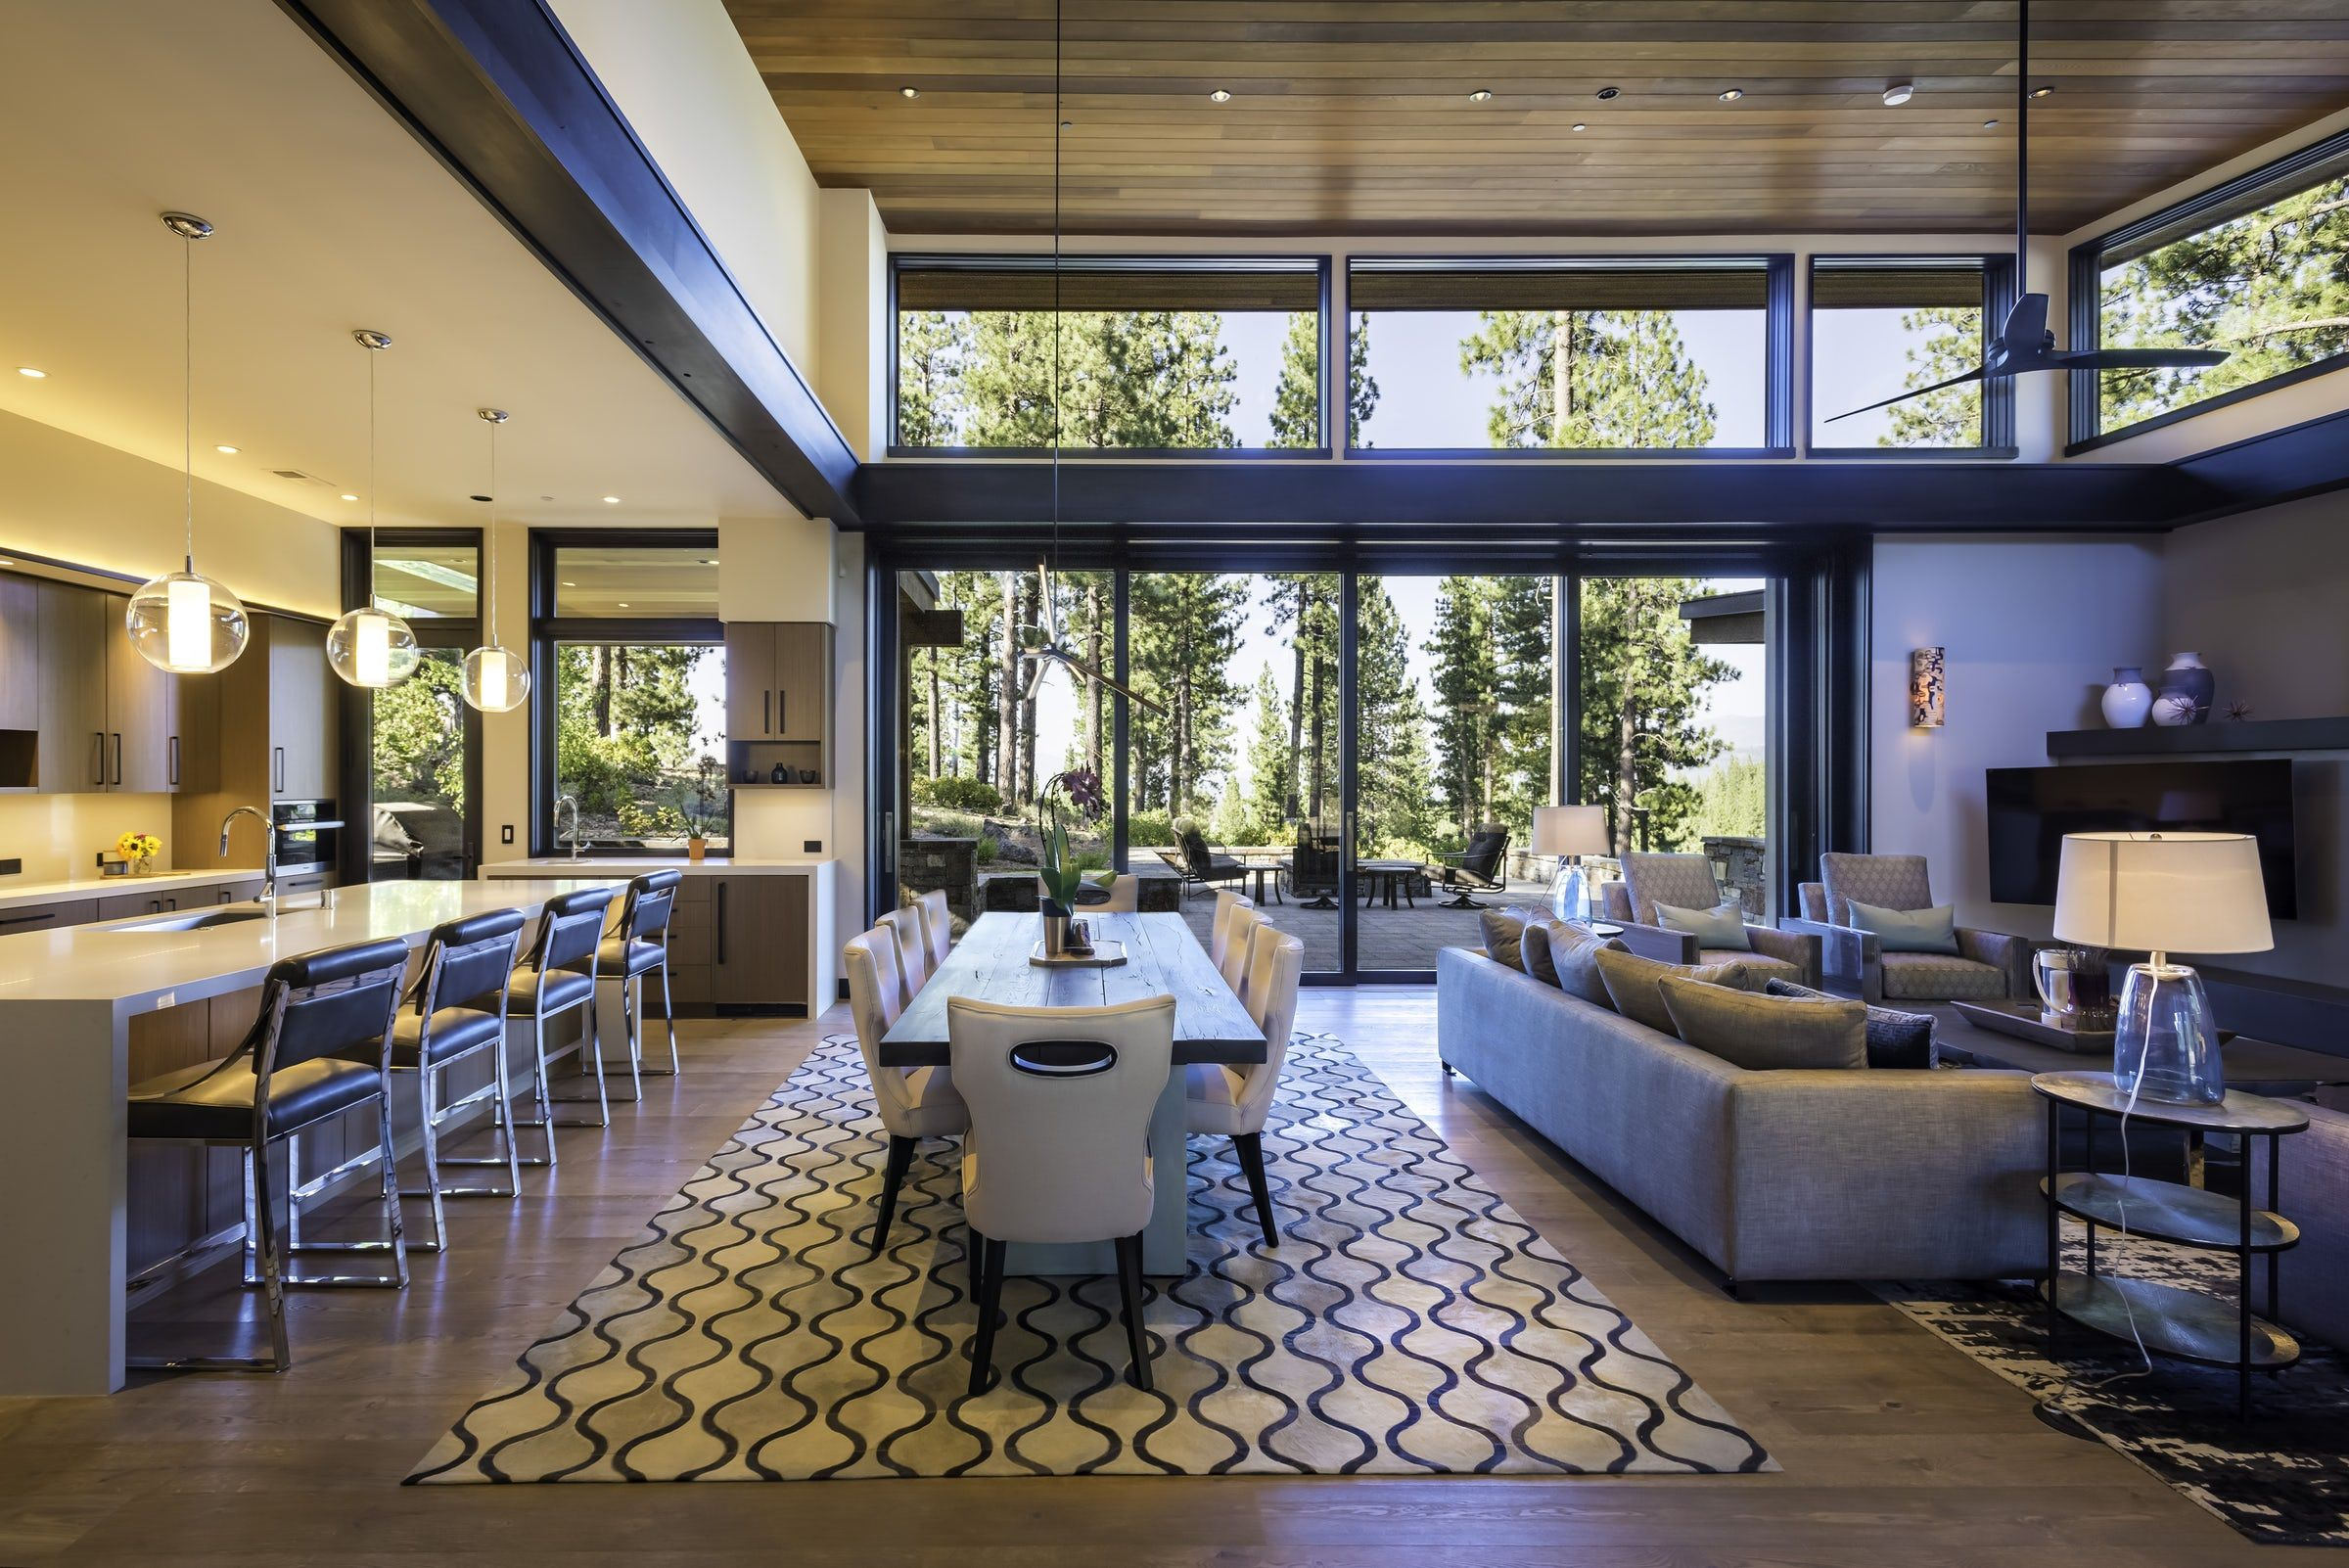 30+ Gorgeous Open Floor Plan Ideas - How to Design Open-Concept Spaces